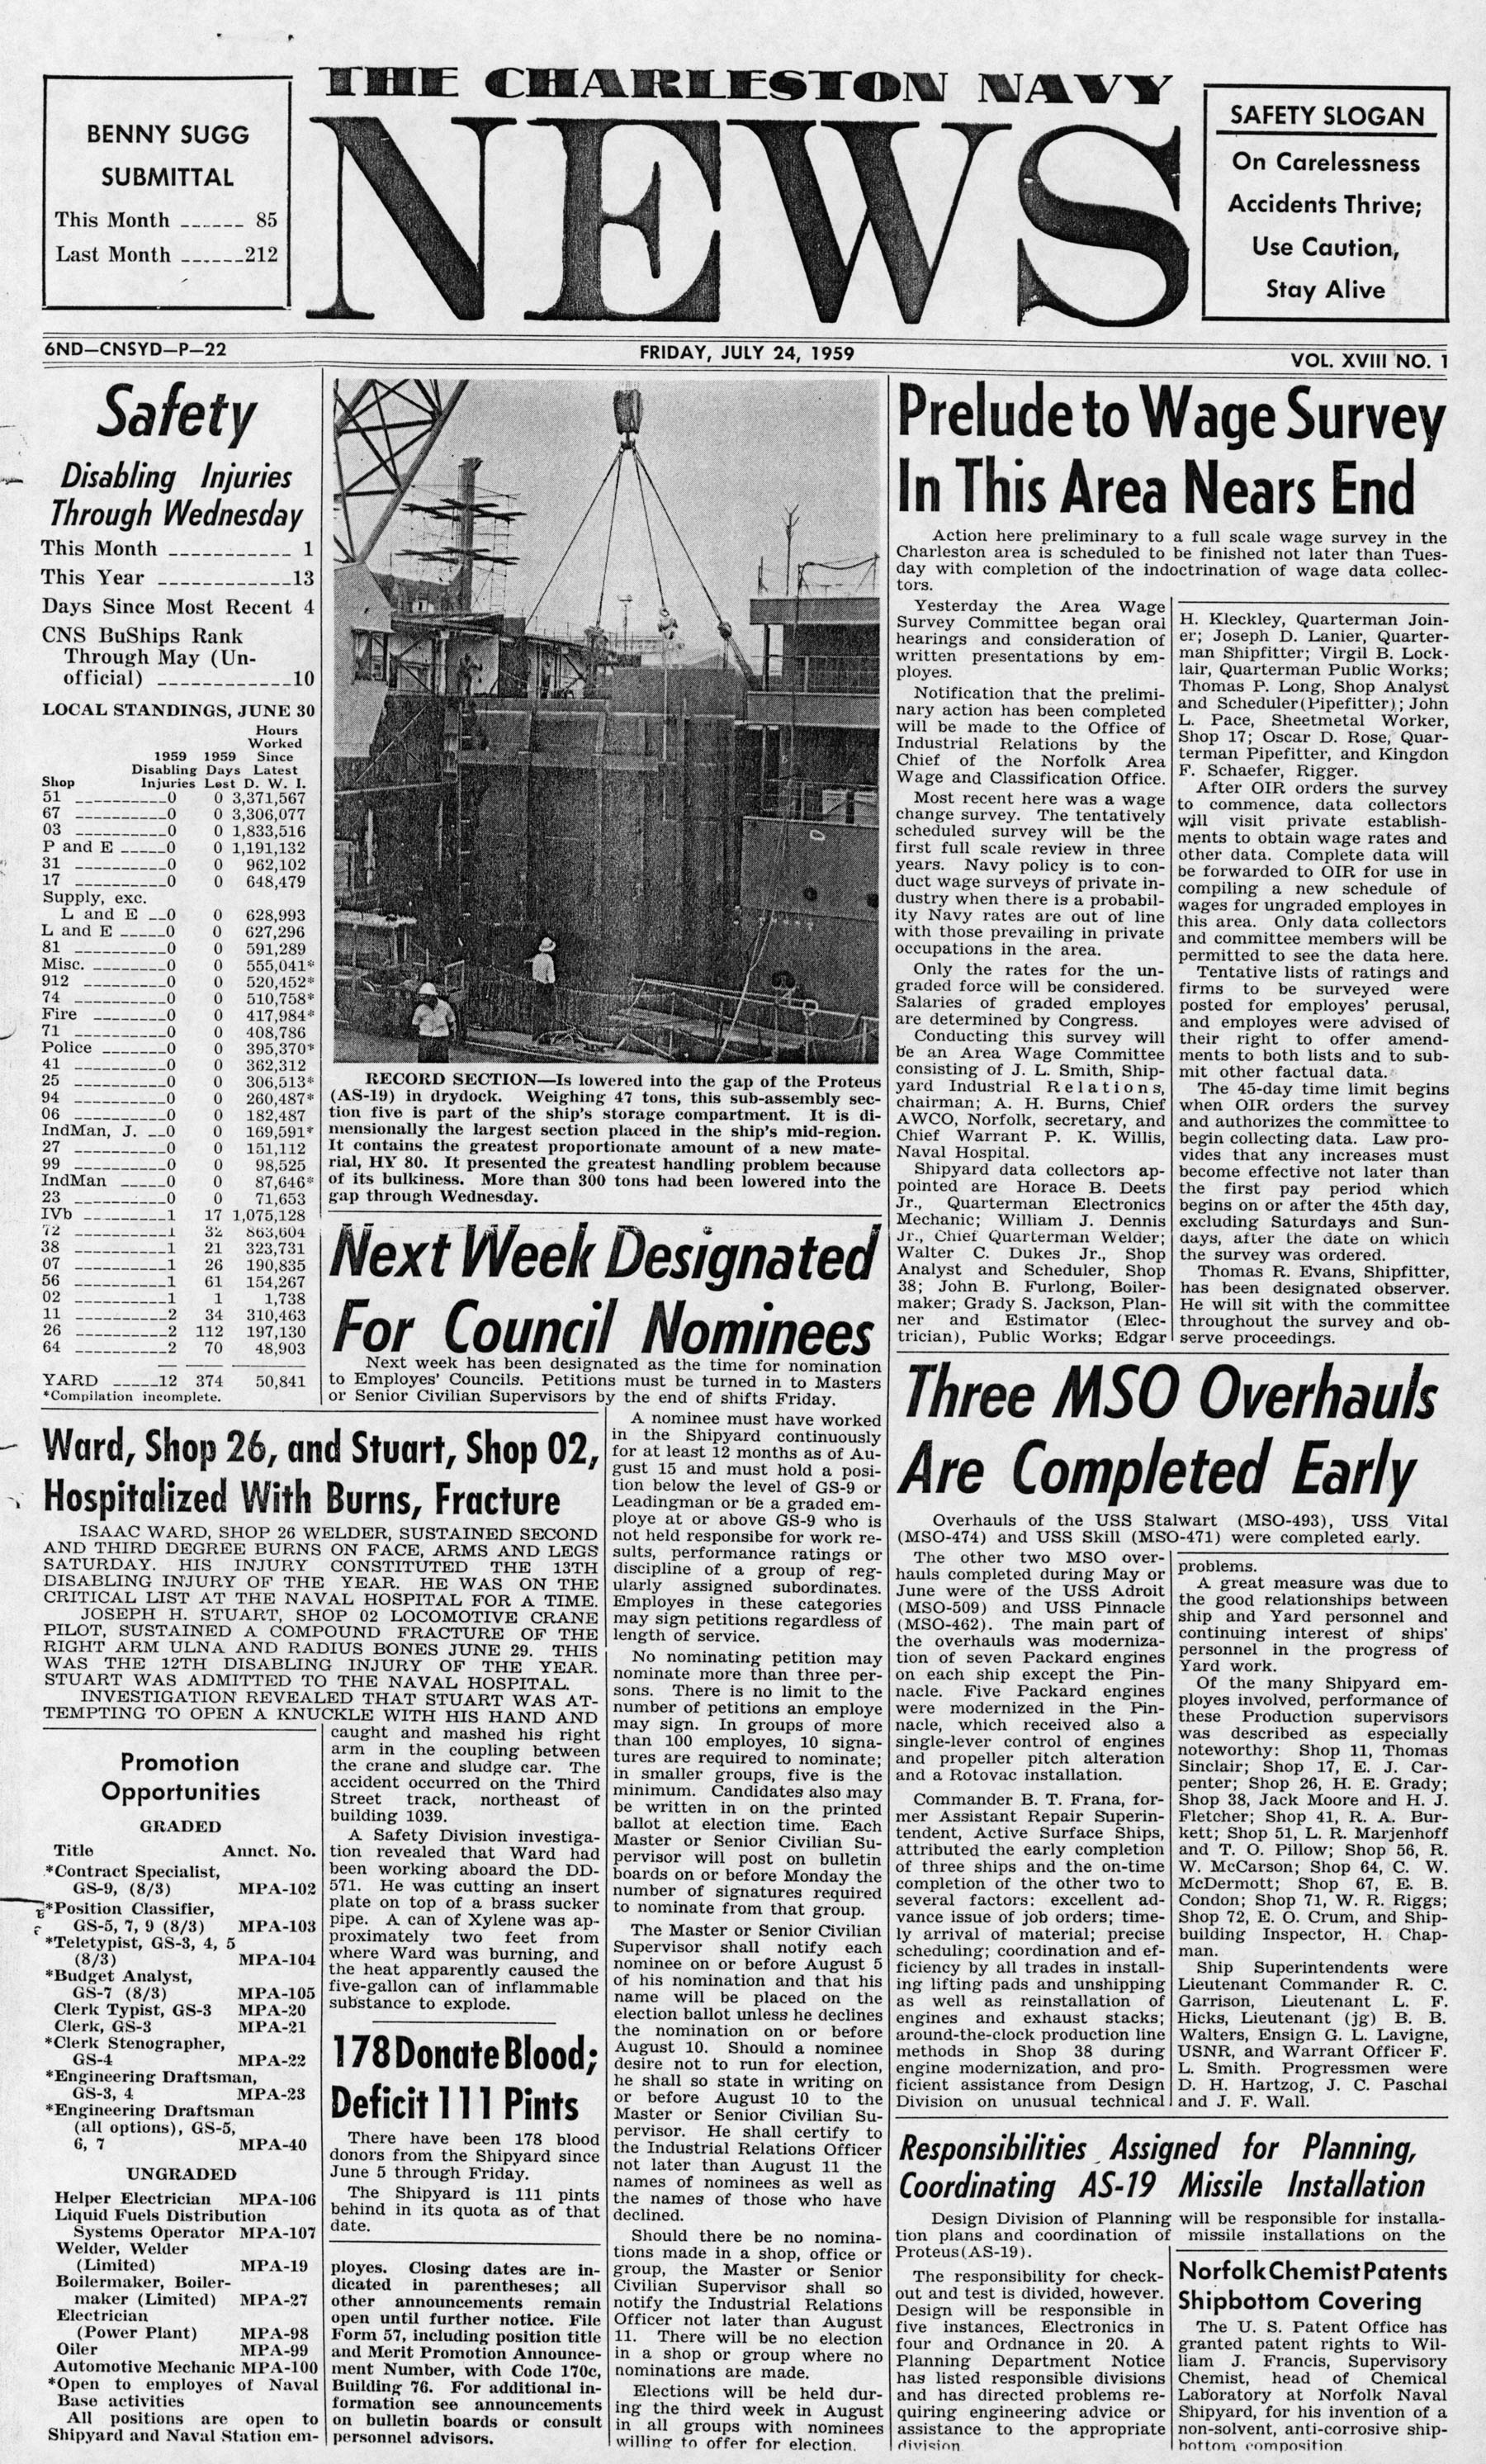 The Charleston Navy News, Volume 18, Edition 1, page i